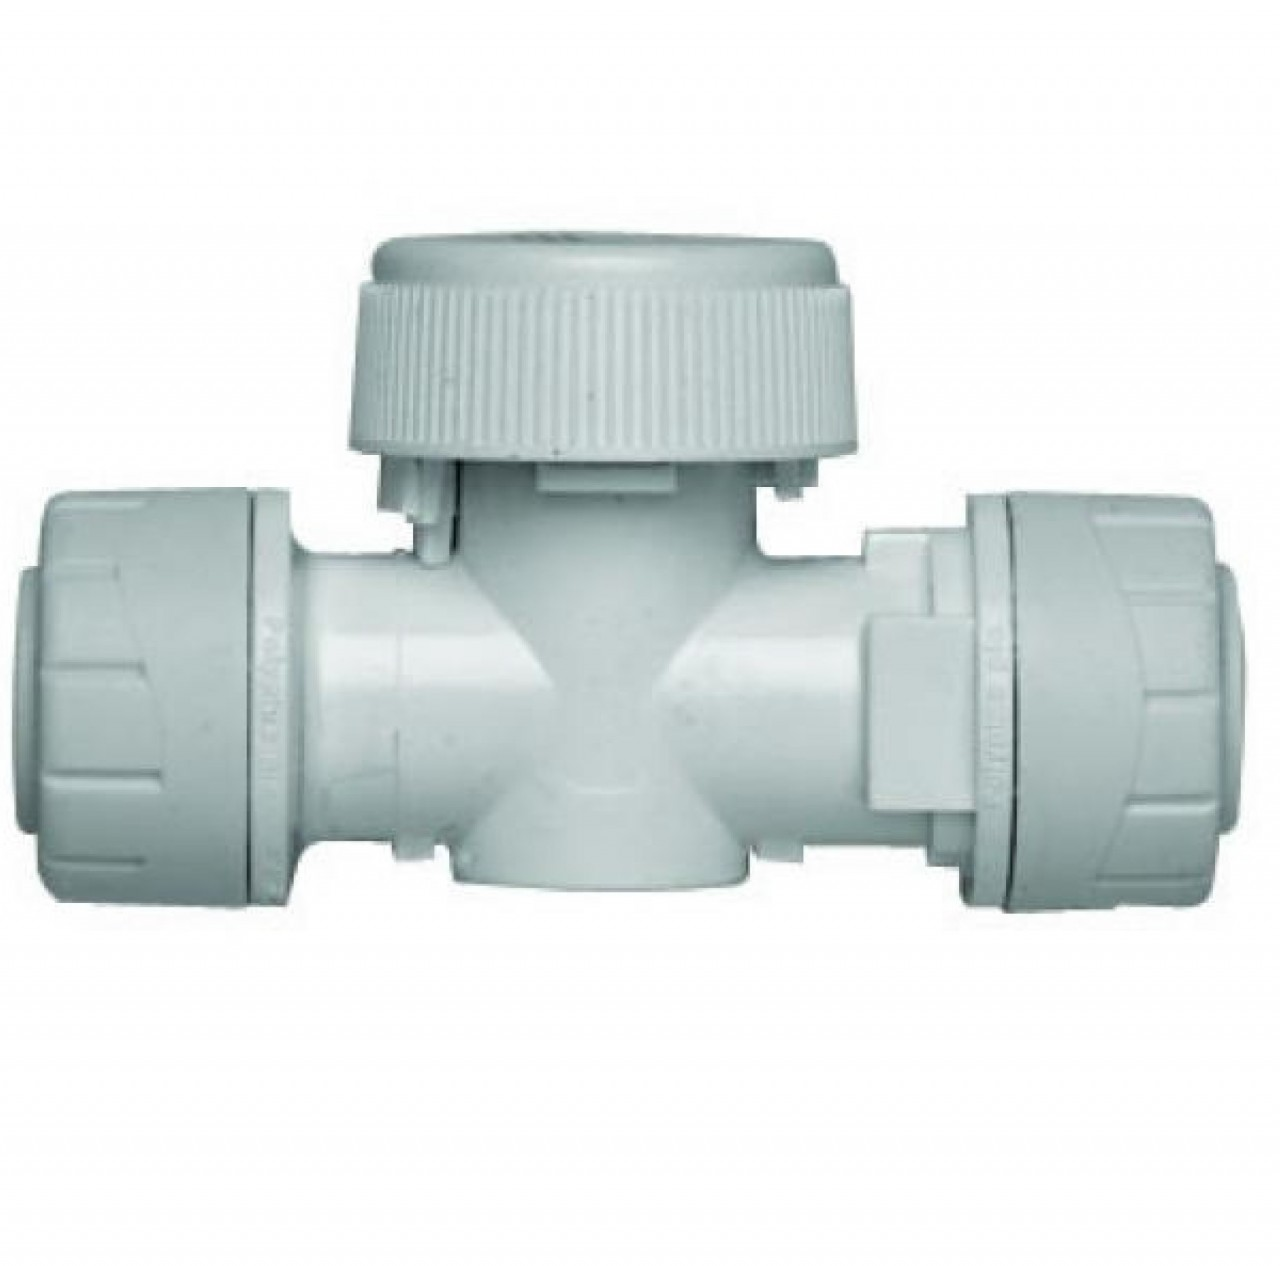 Polyplumb 15mm Shut Off Valve